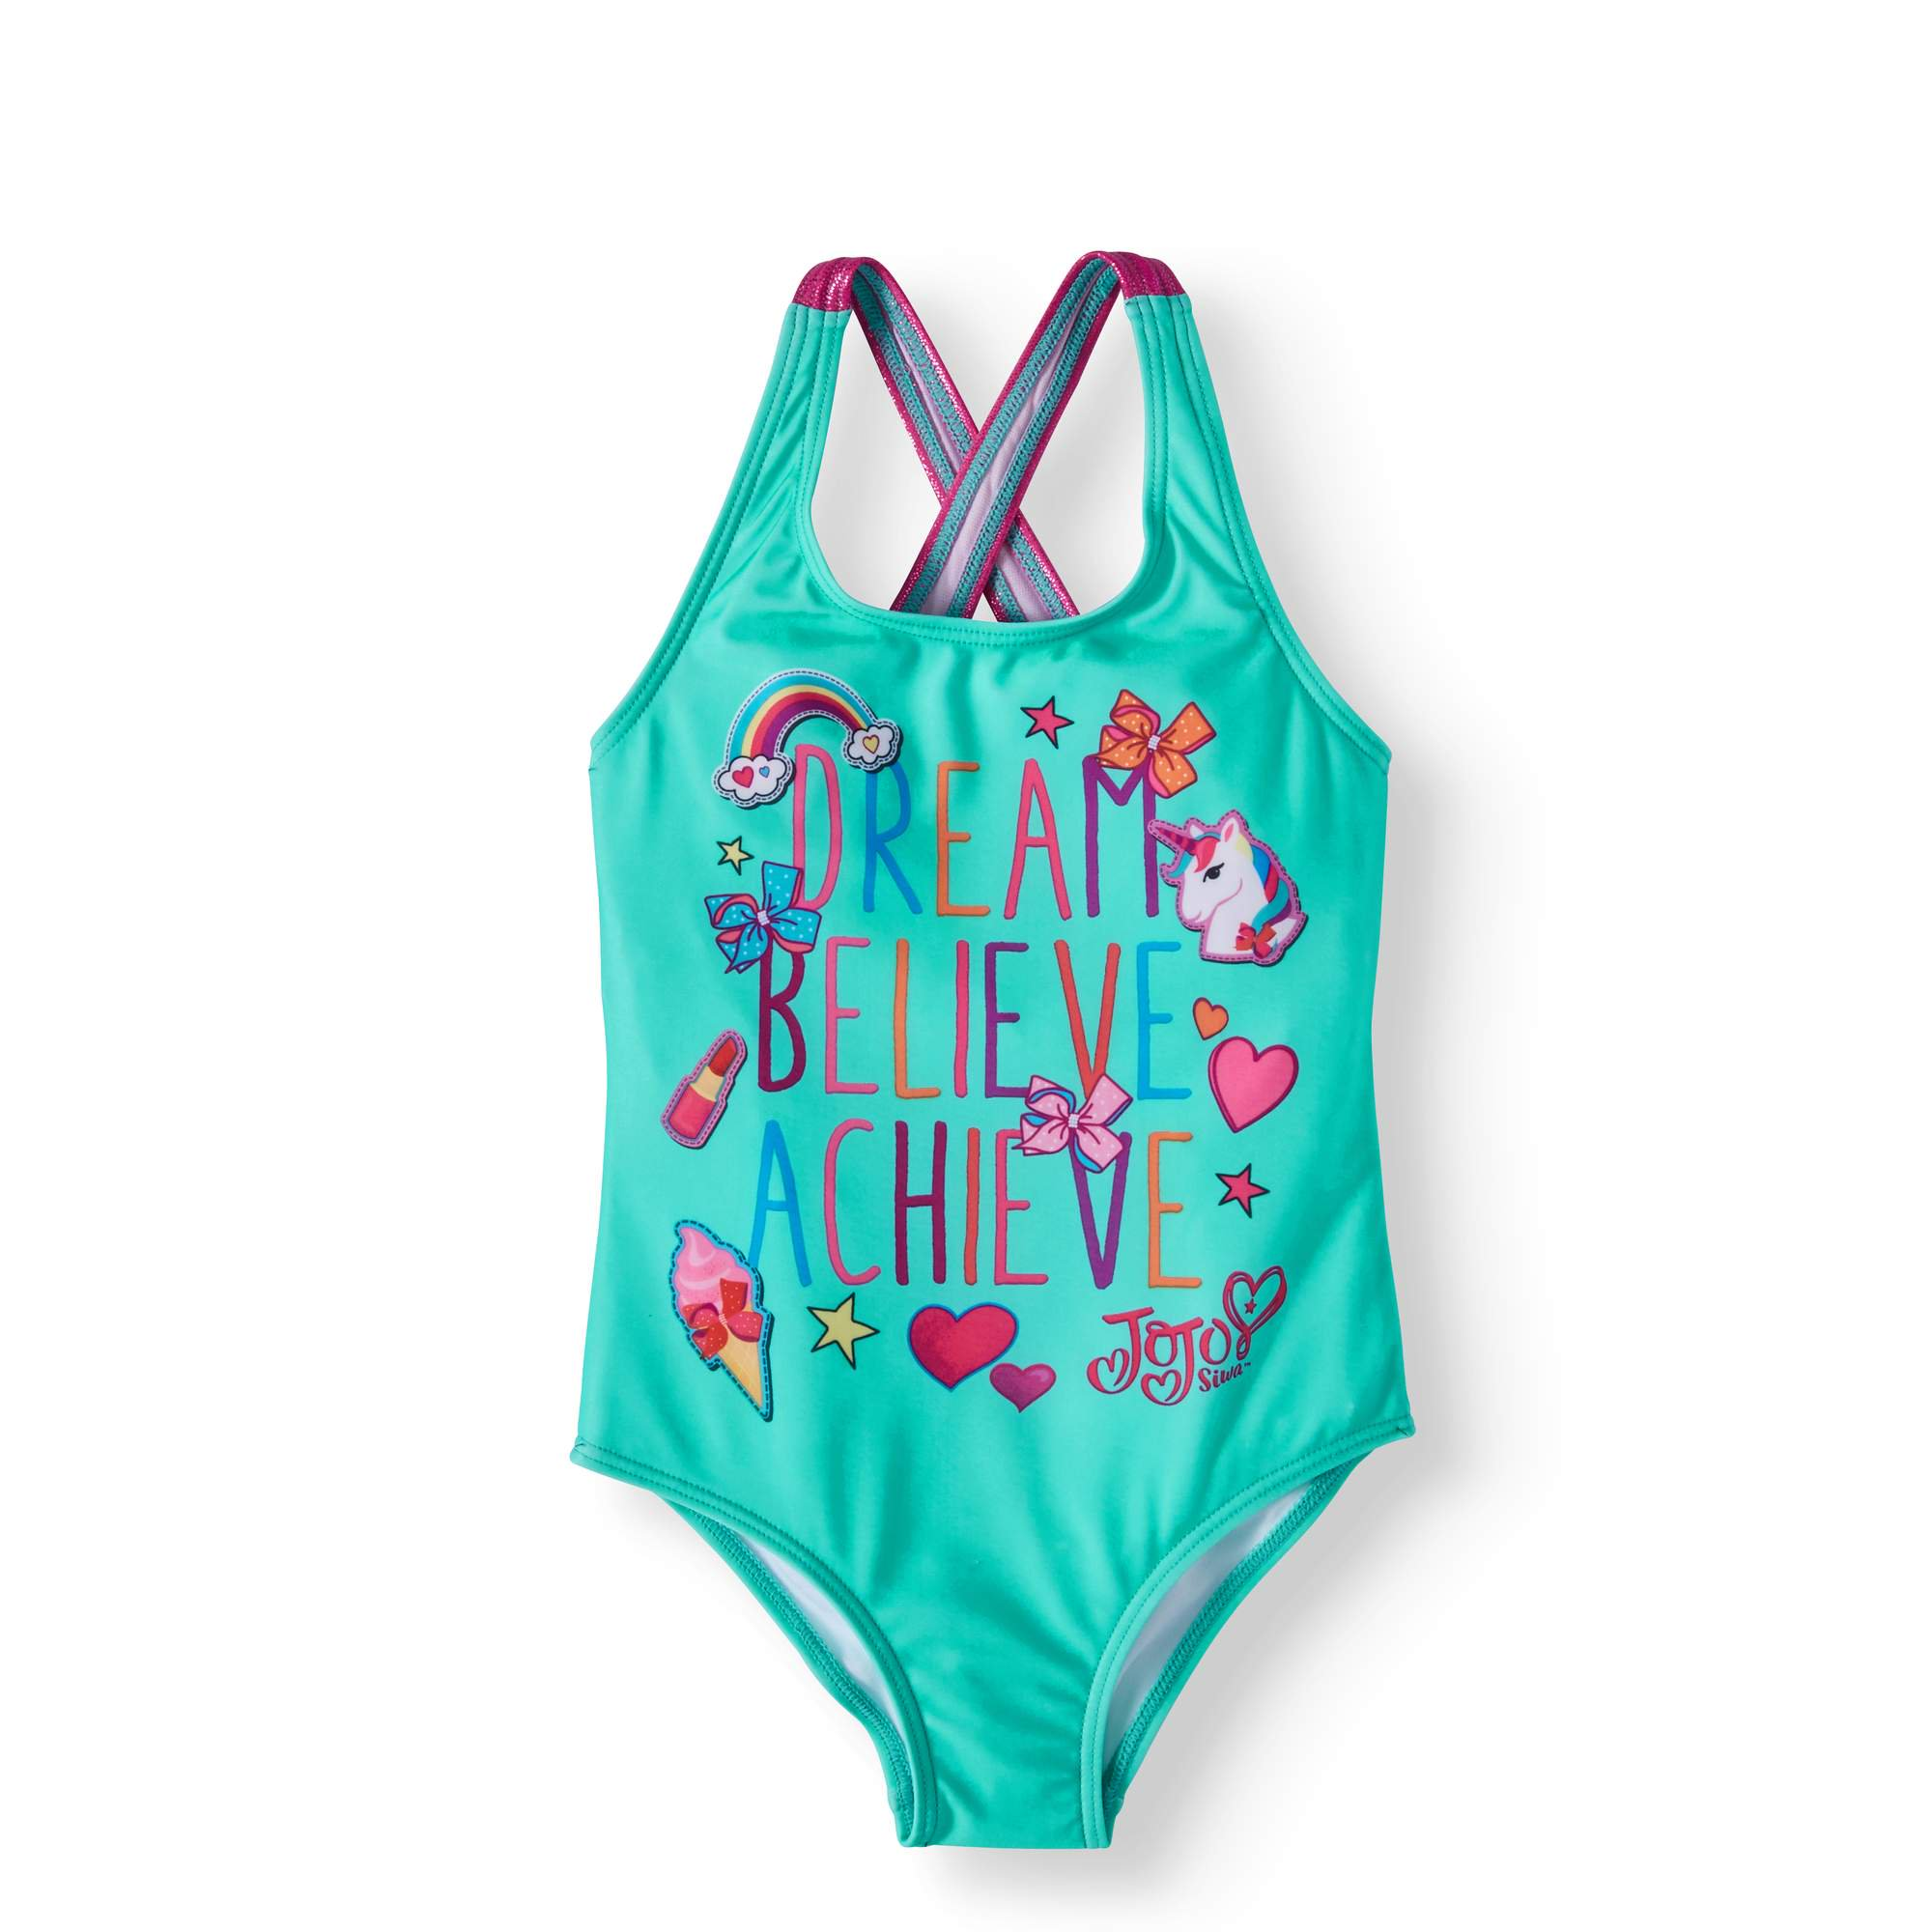 6633629470a1a Buy JoJo Siwa Girls  1 Piece Swimsuit